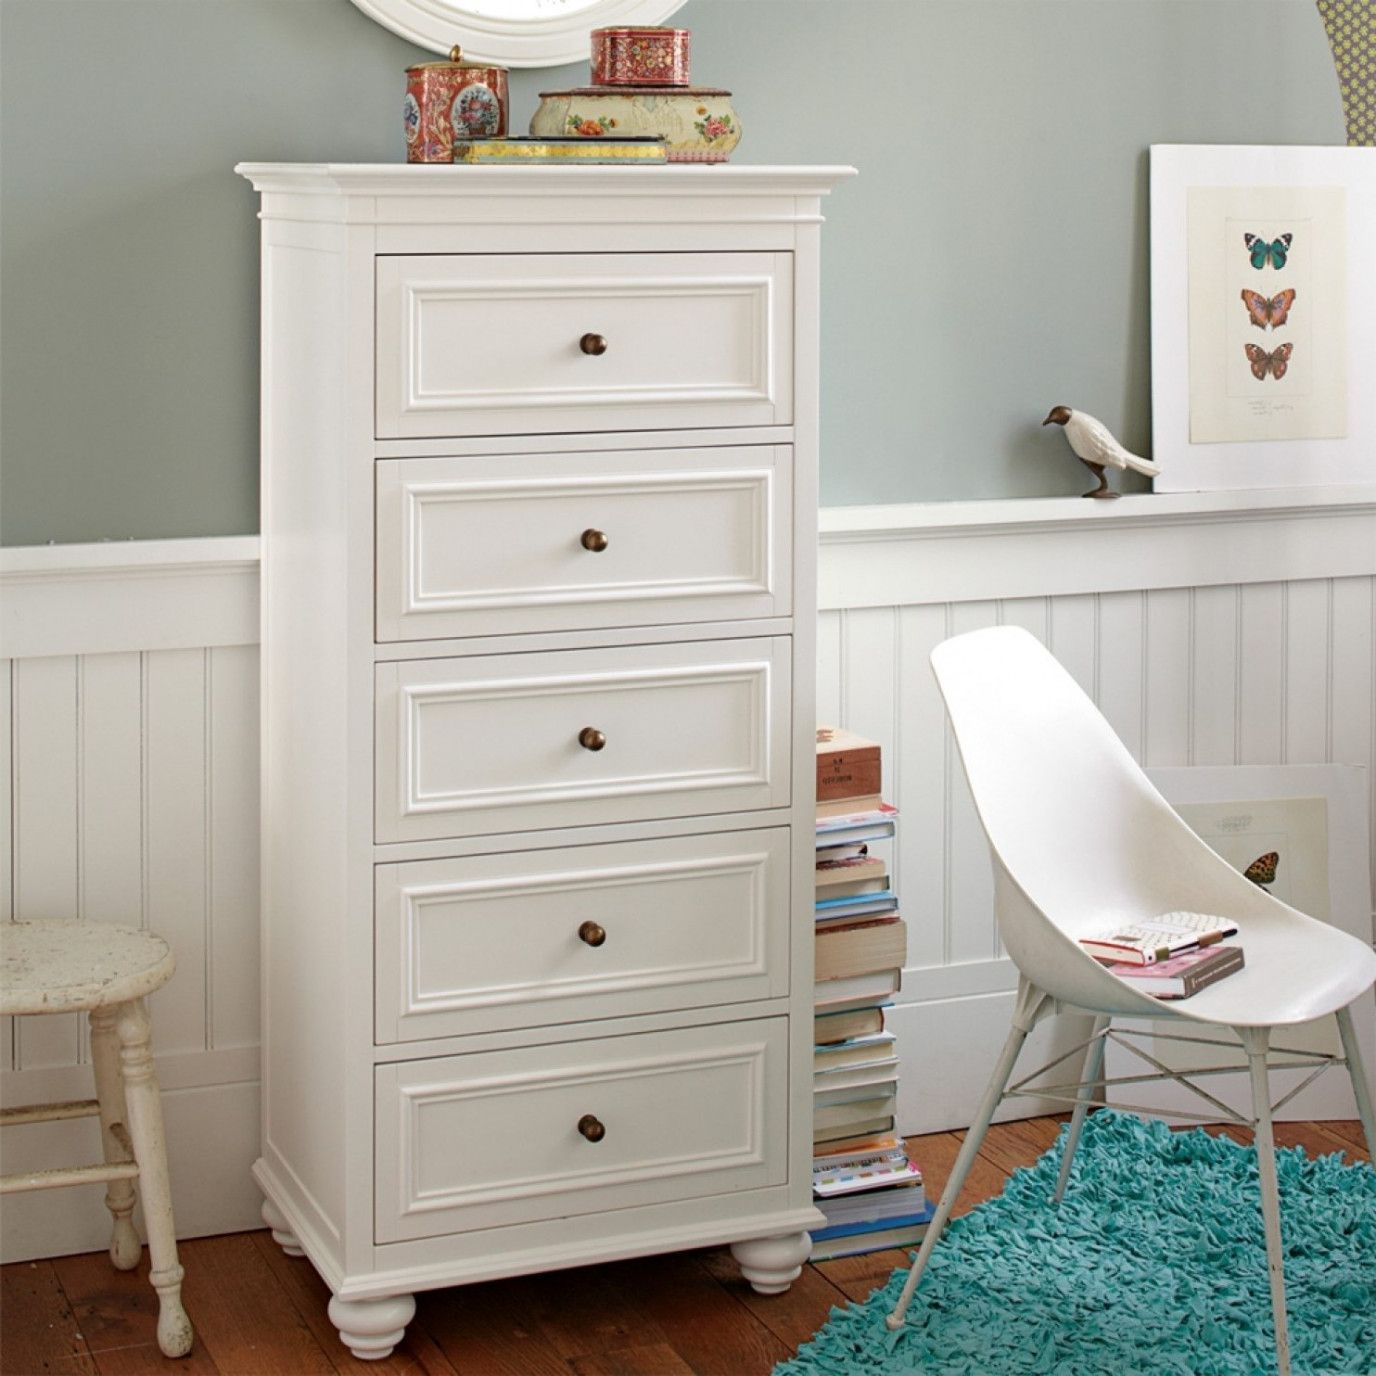 78+ Narrow Dressers for Small Spaces Interior Design for